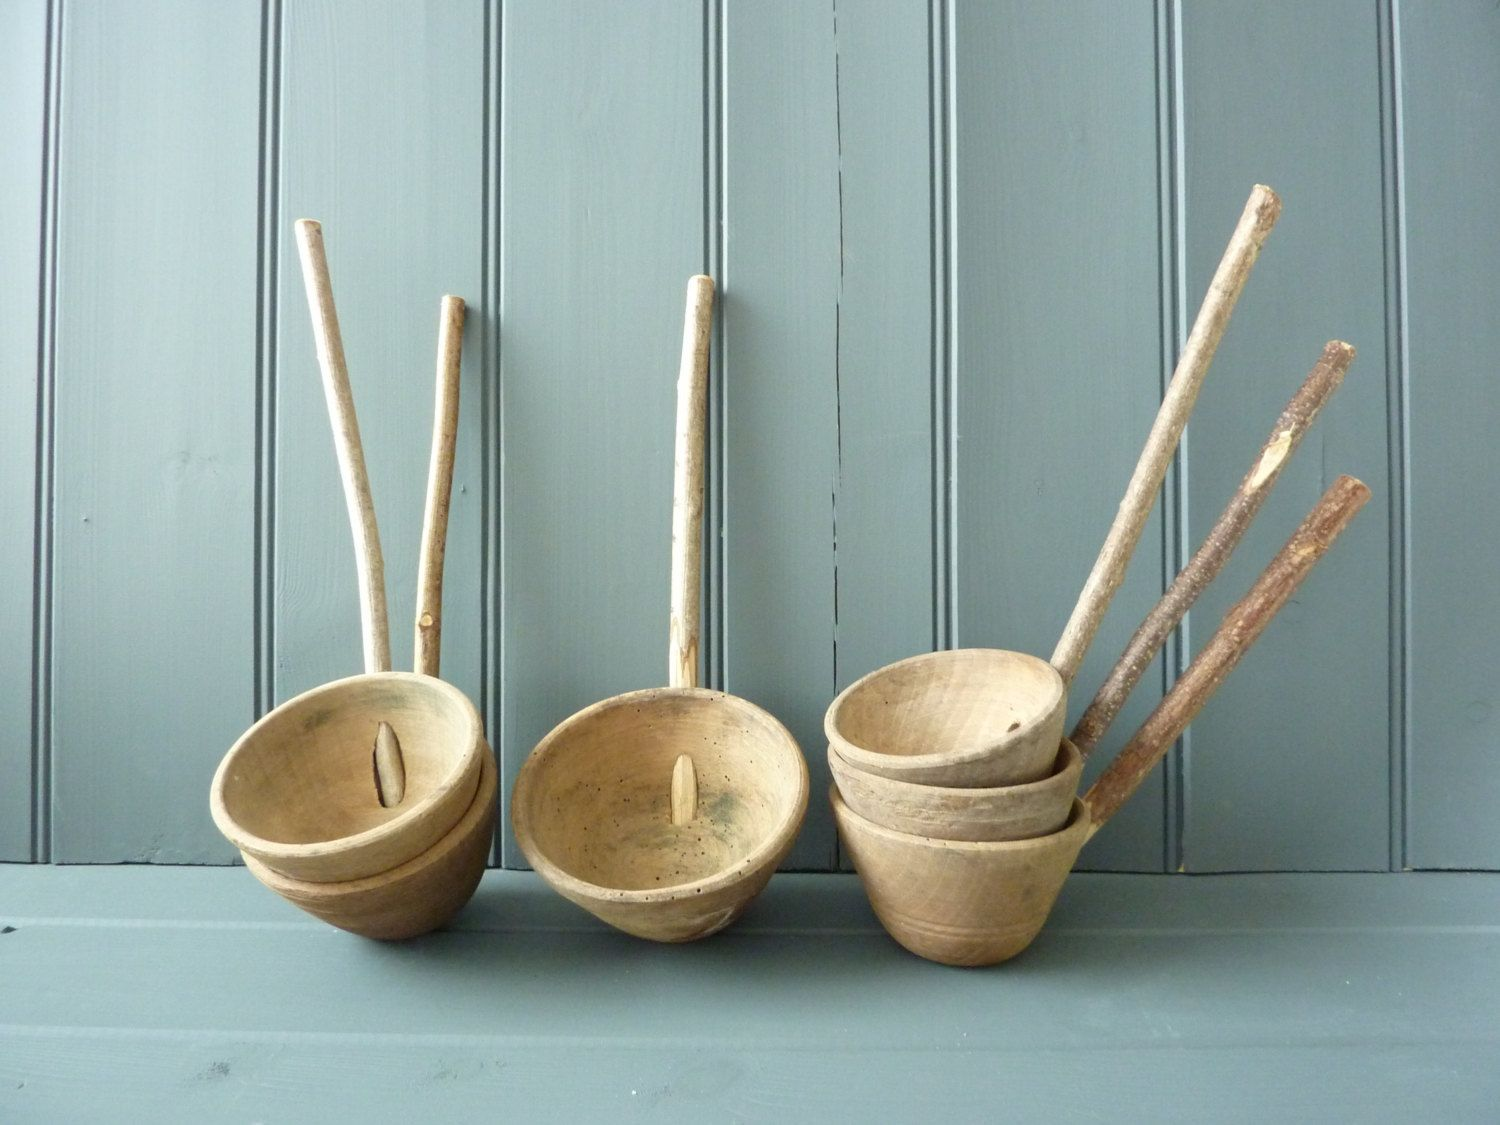 Vintage French kitchen utensils, hand carved wooden ladles ...